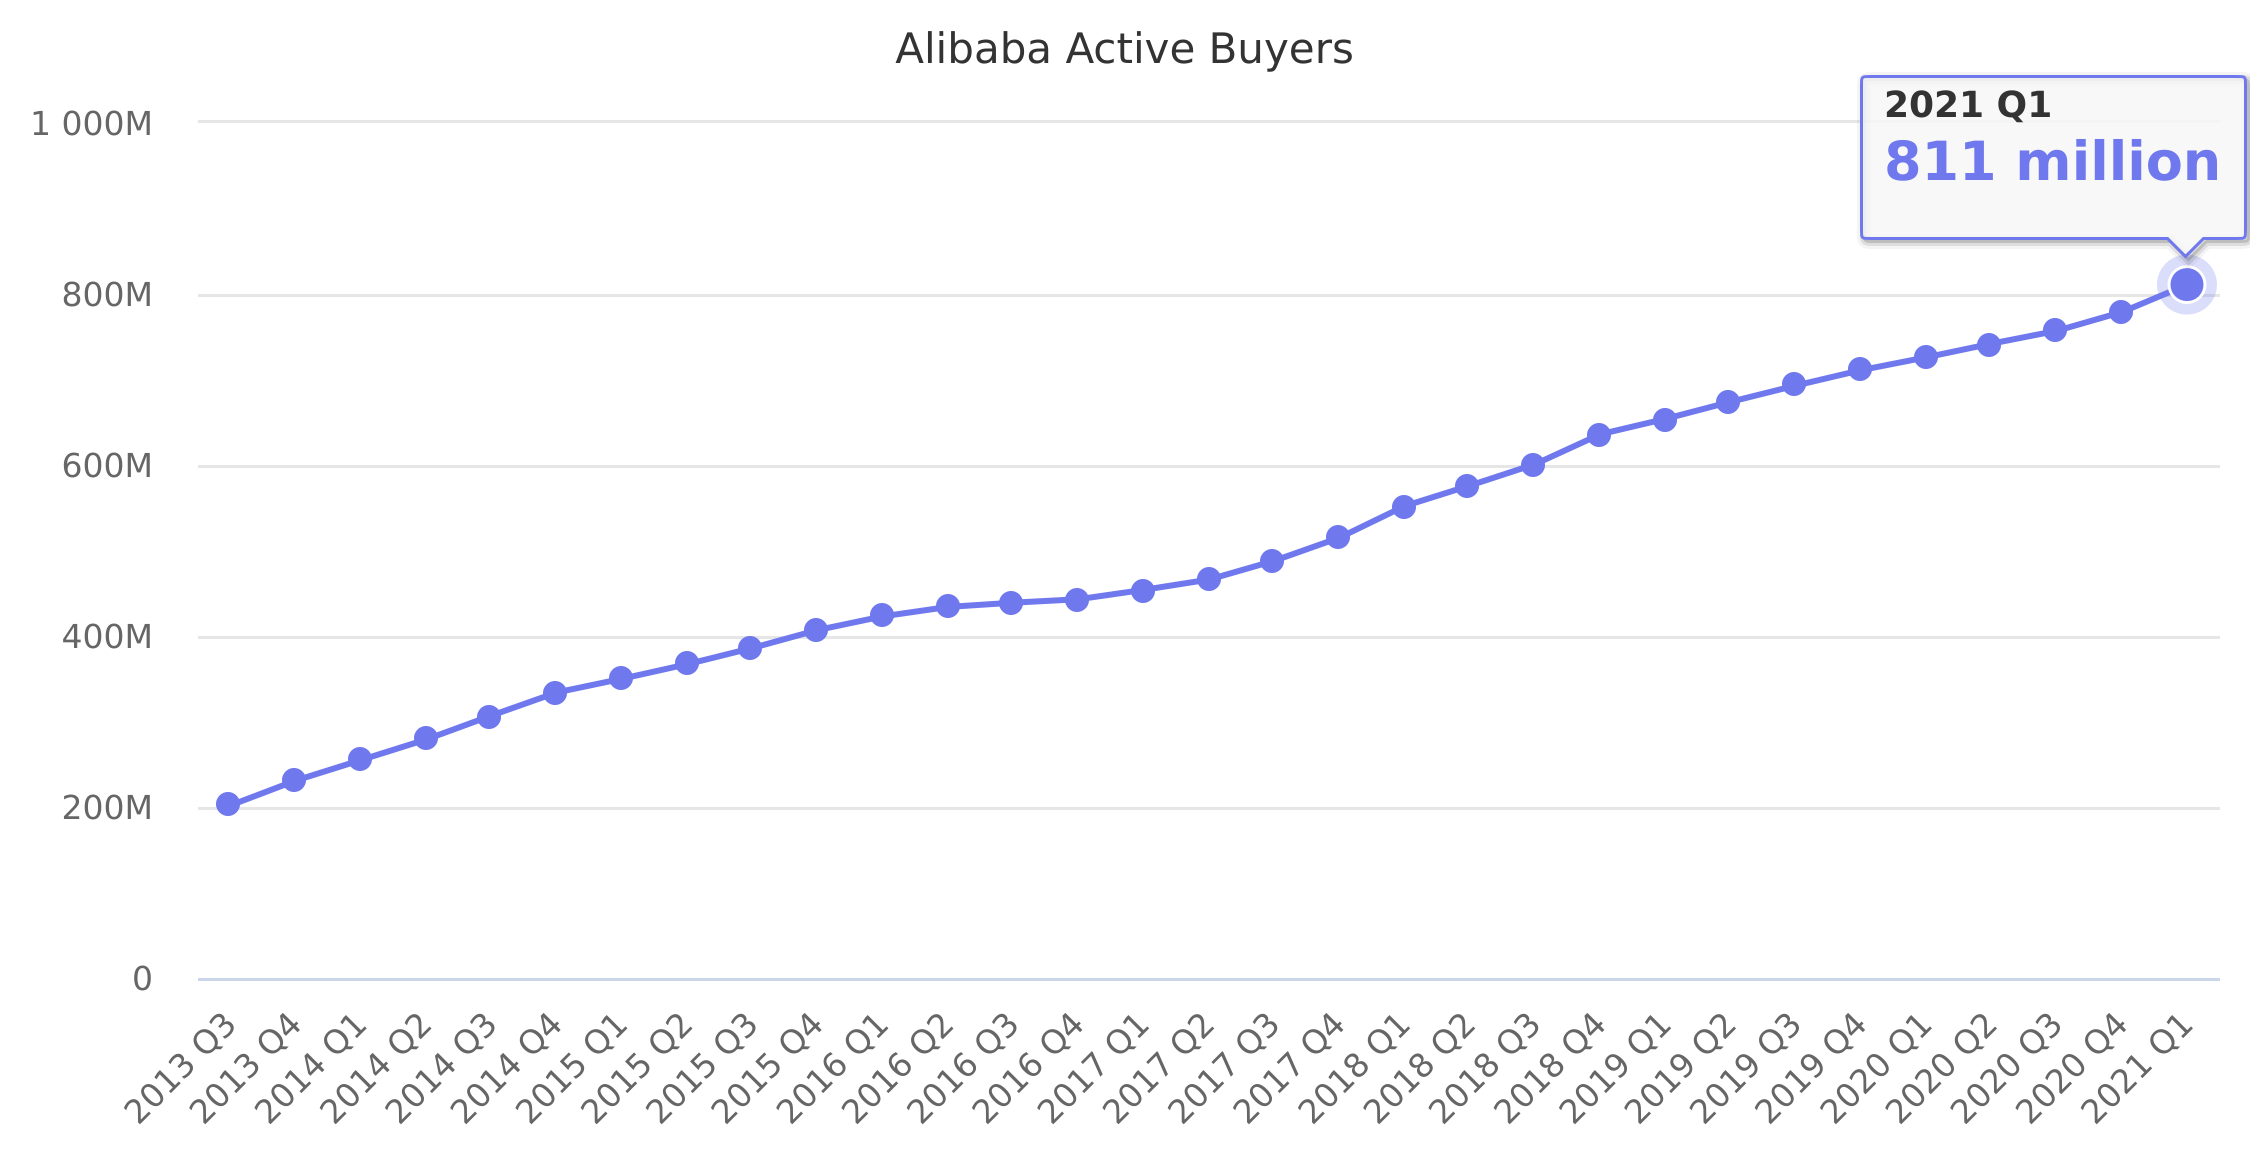 Alibaba Active Buyers 2013-2018